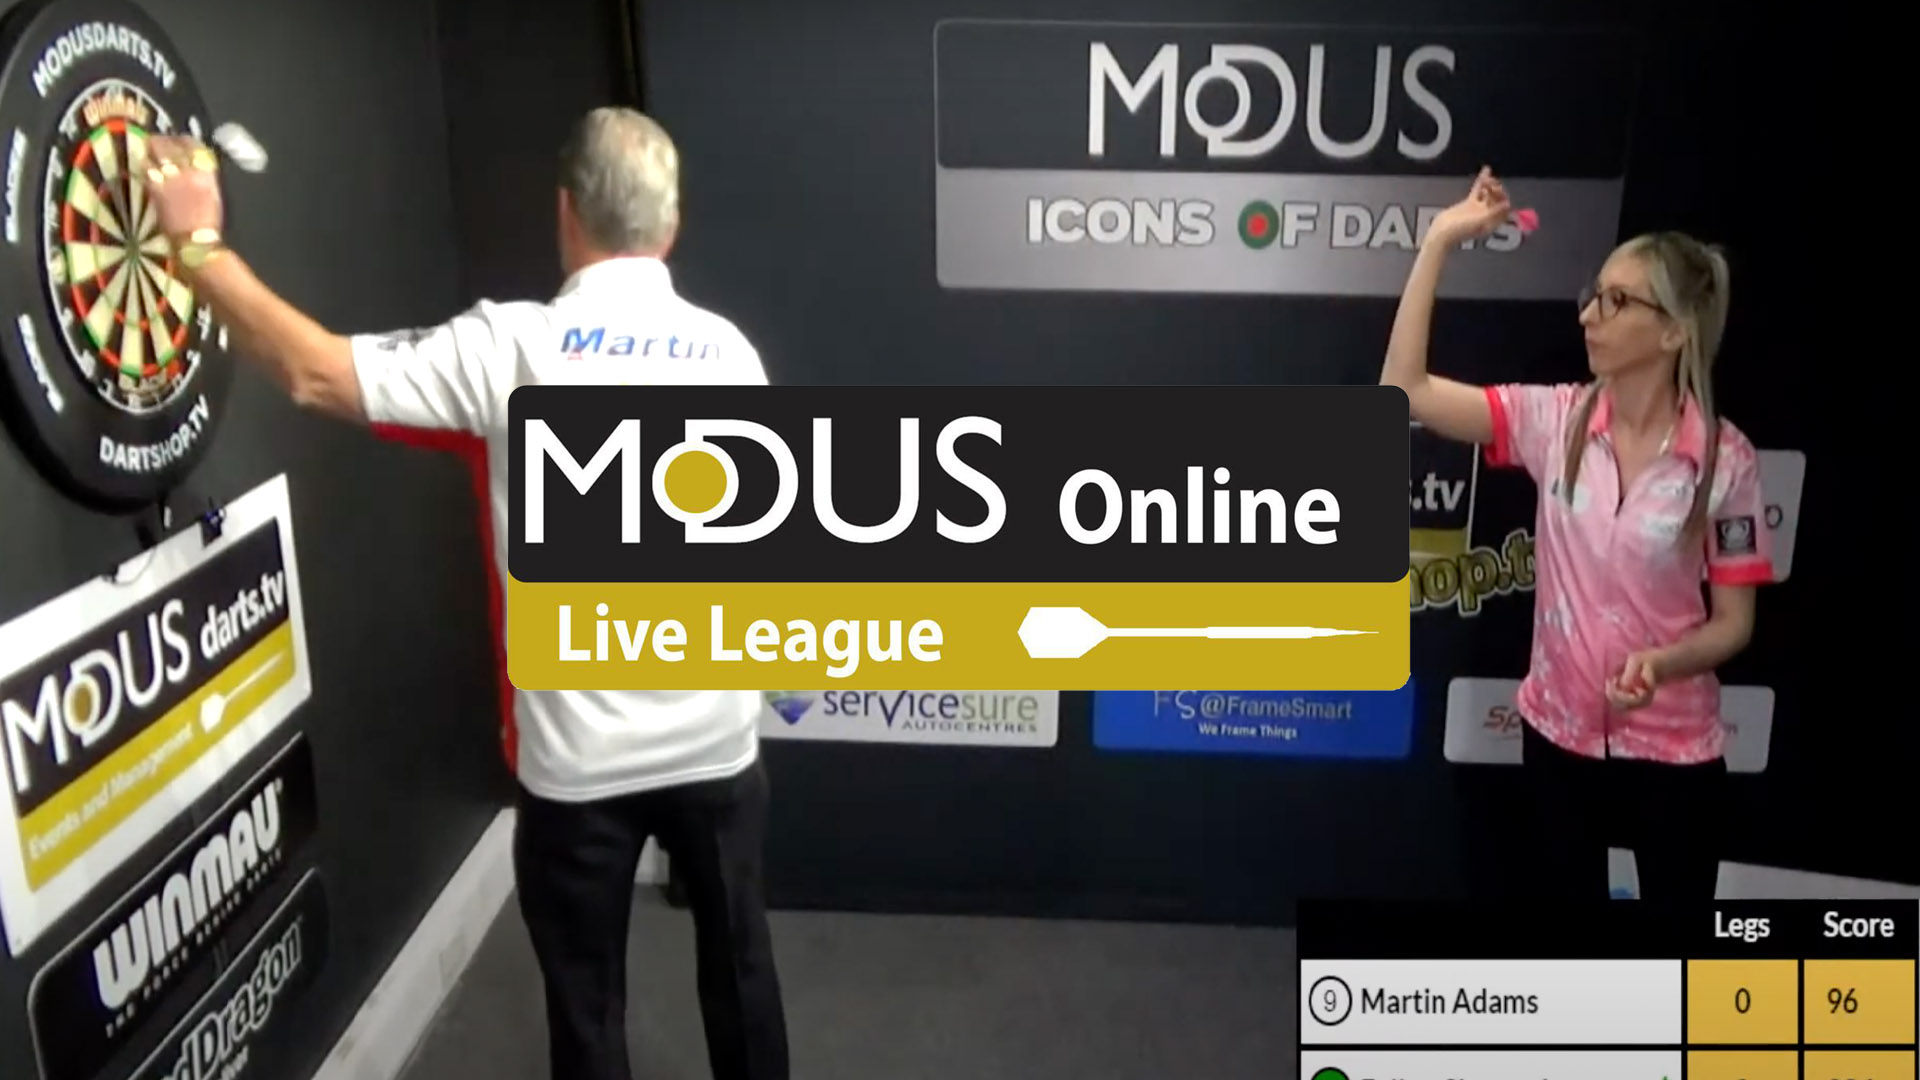 How To Watch The Modus Live League Online Darts